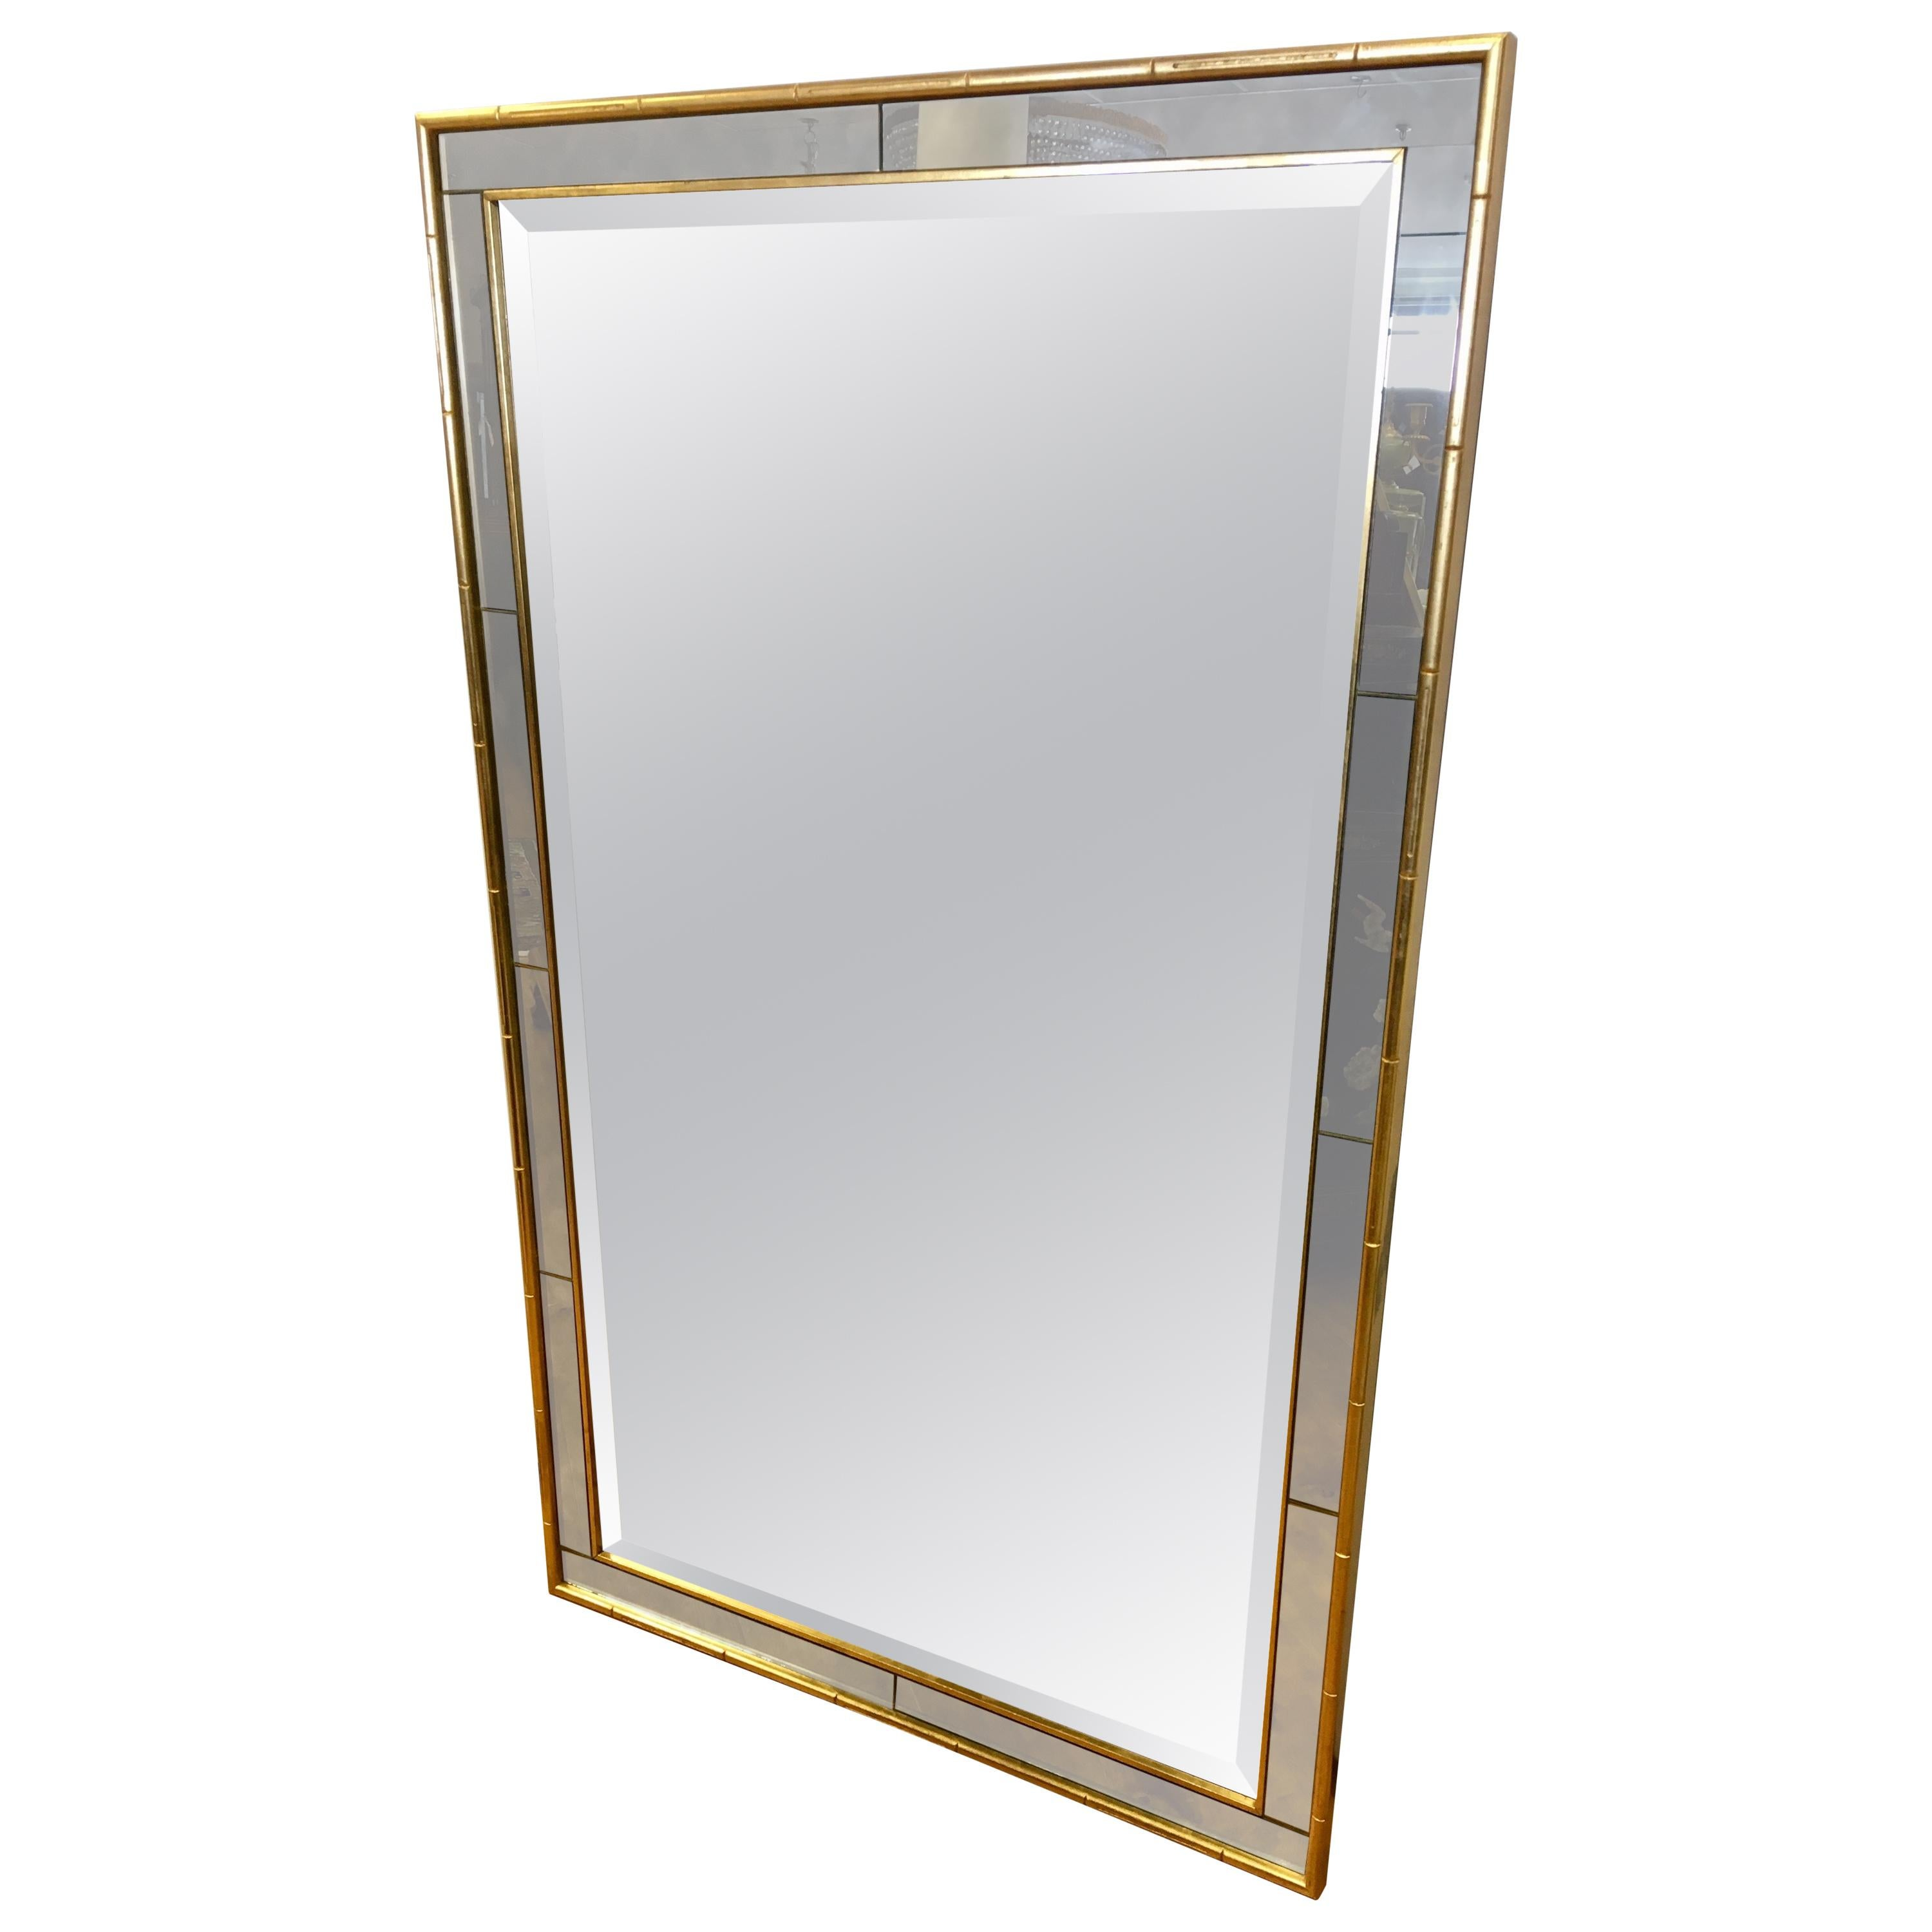 Labarge La Barge Large Gold Faux Bamboo Mirror